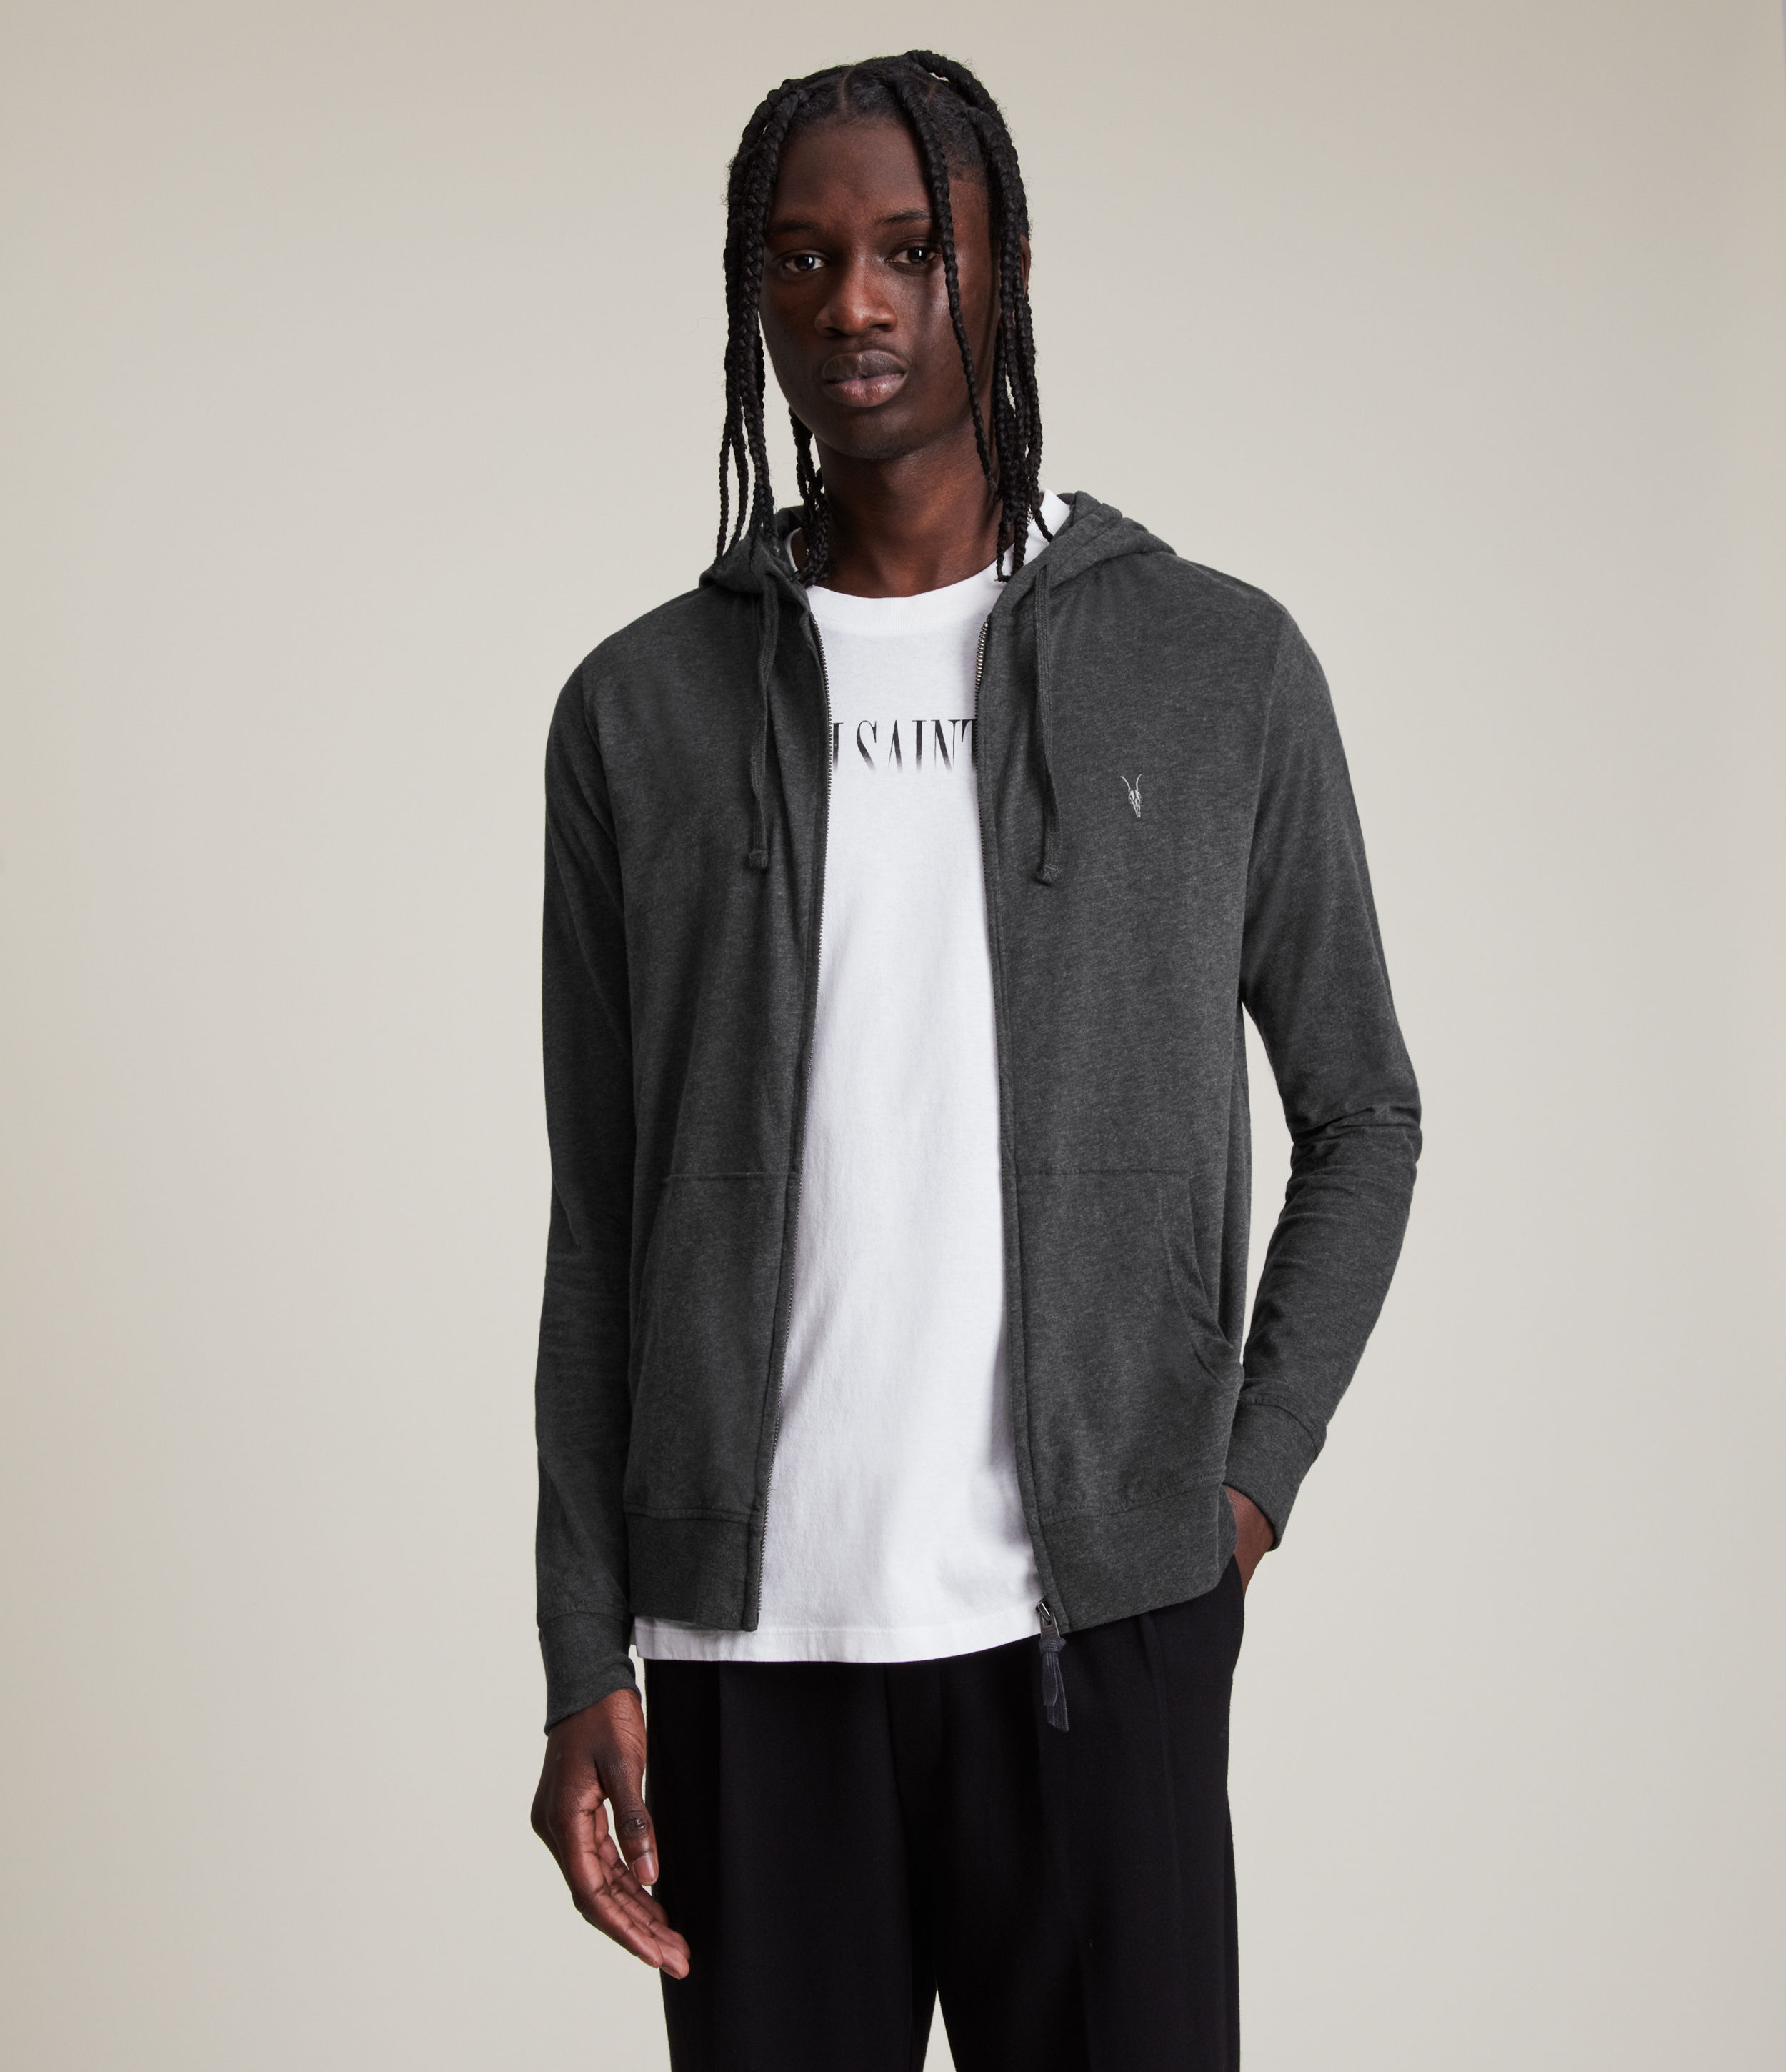 AllSaints Men's Cotton Regular Fit Brace Hoodie, Grey, Size: XS